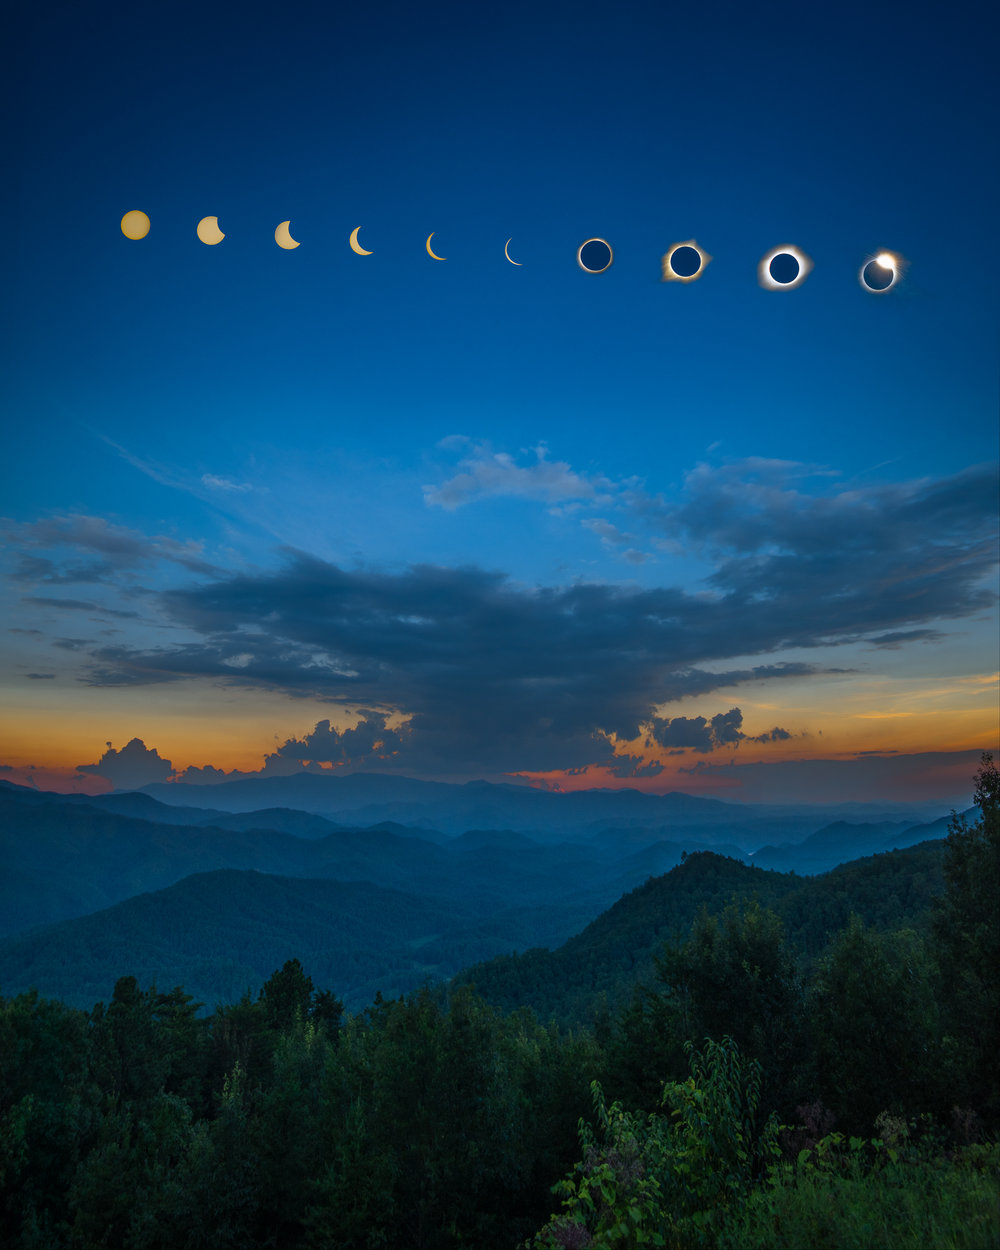 EclipseComposite2-Edit.jpg